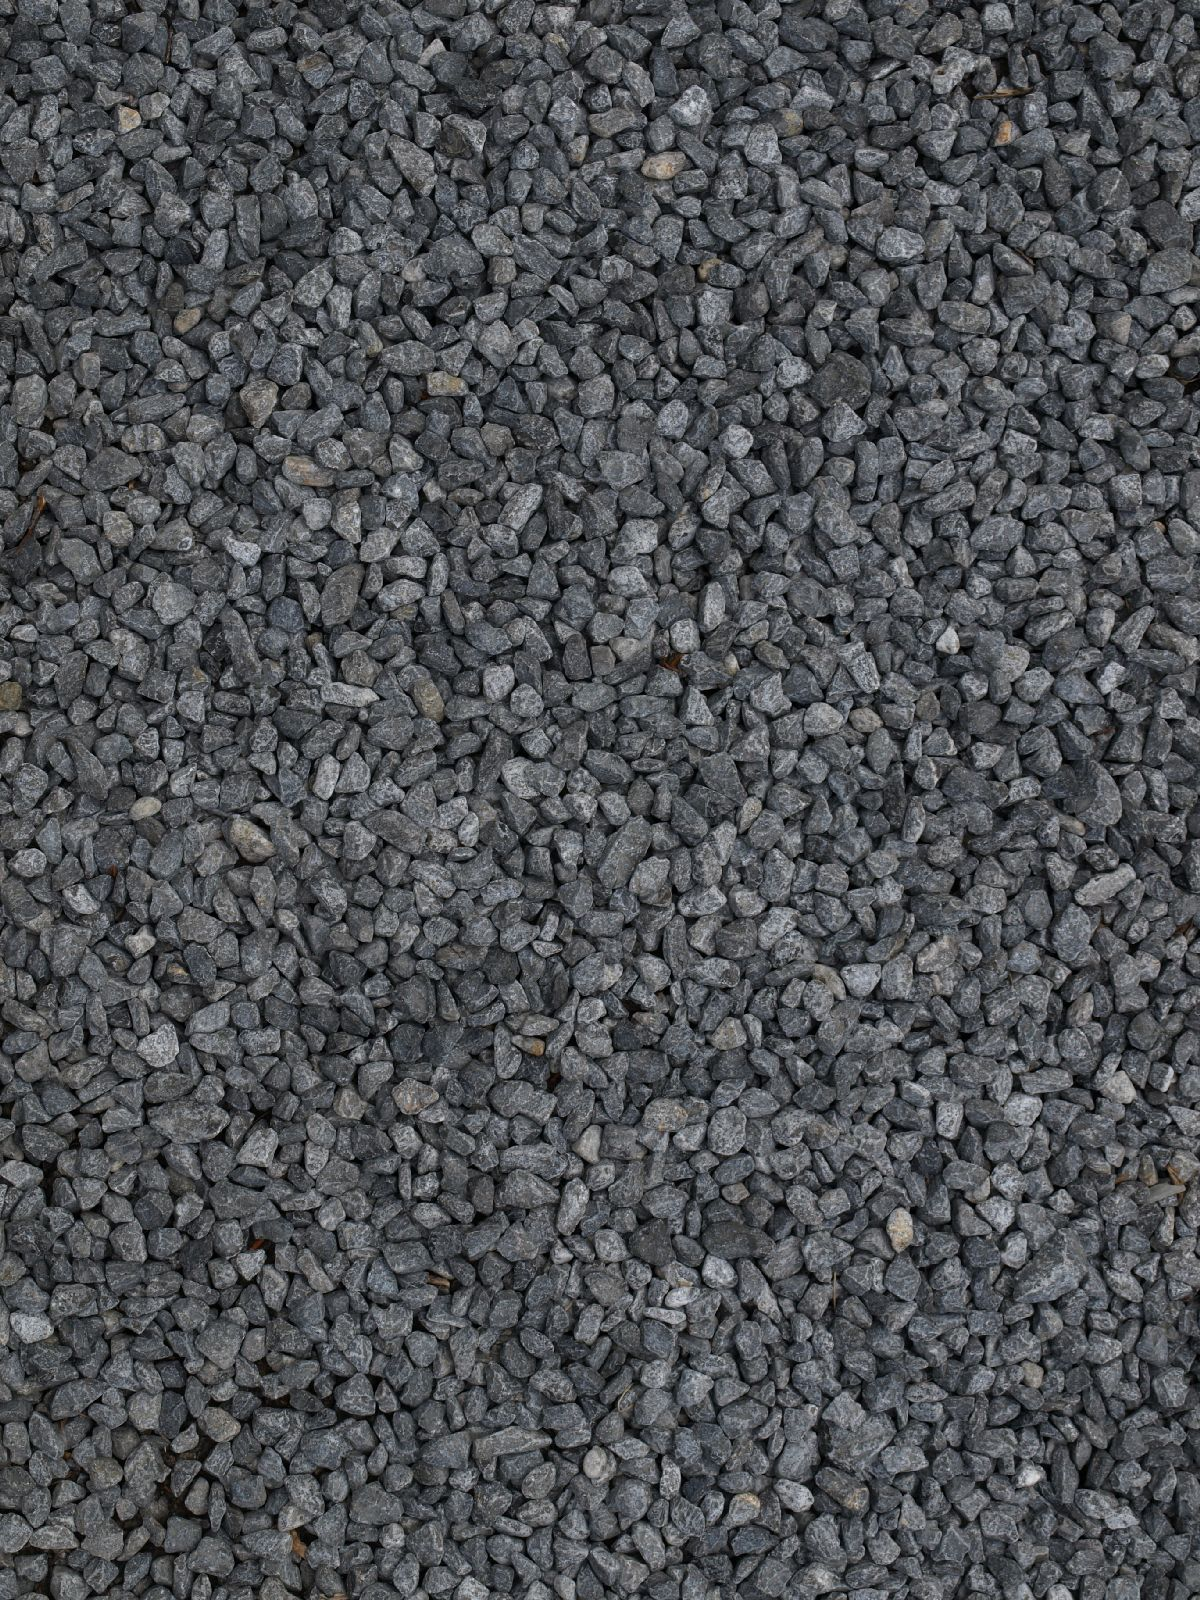 Ground-Nature_Texture_A_P4261812